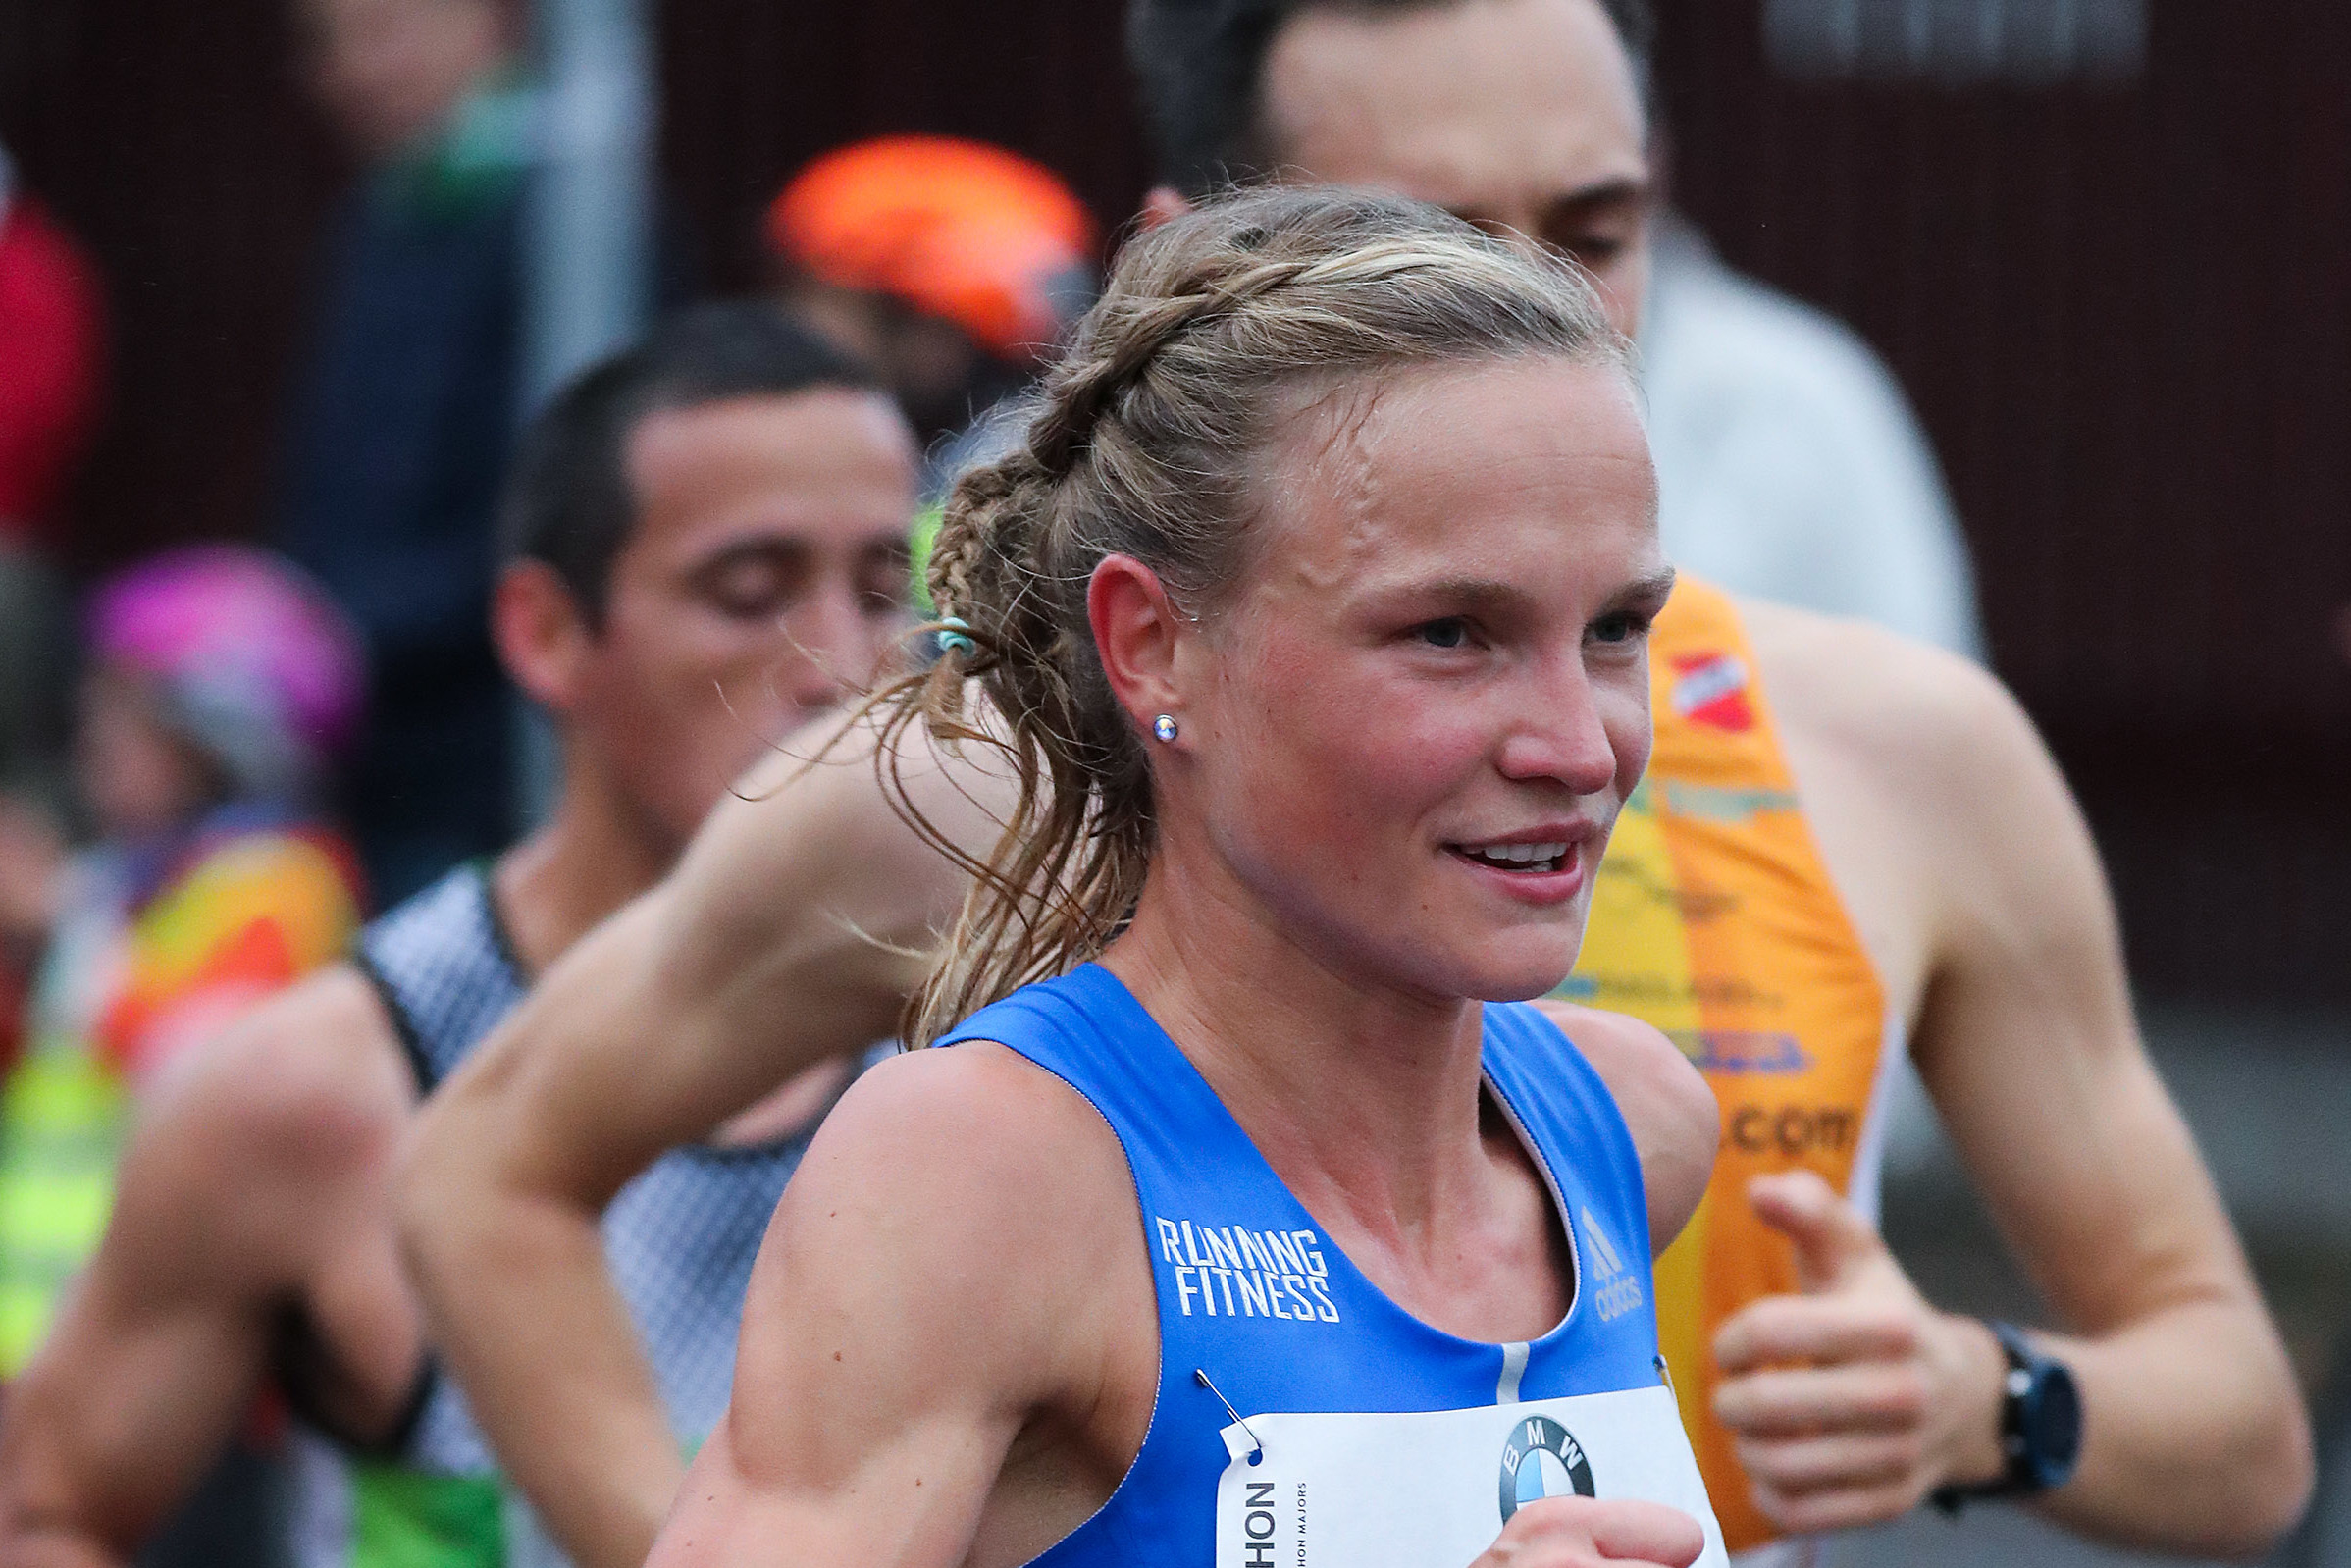 Anna Hahner (SCC EVENTS PRO TEAM) will toe the starting line in Berlin for the 5th time